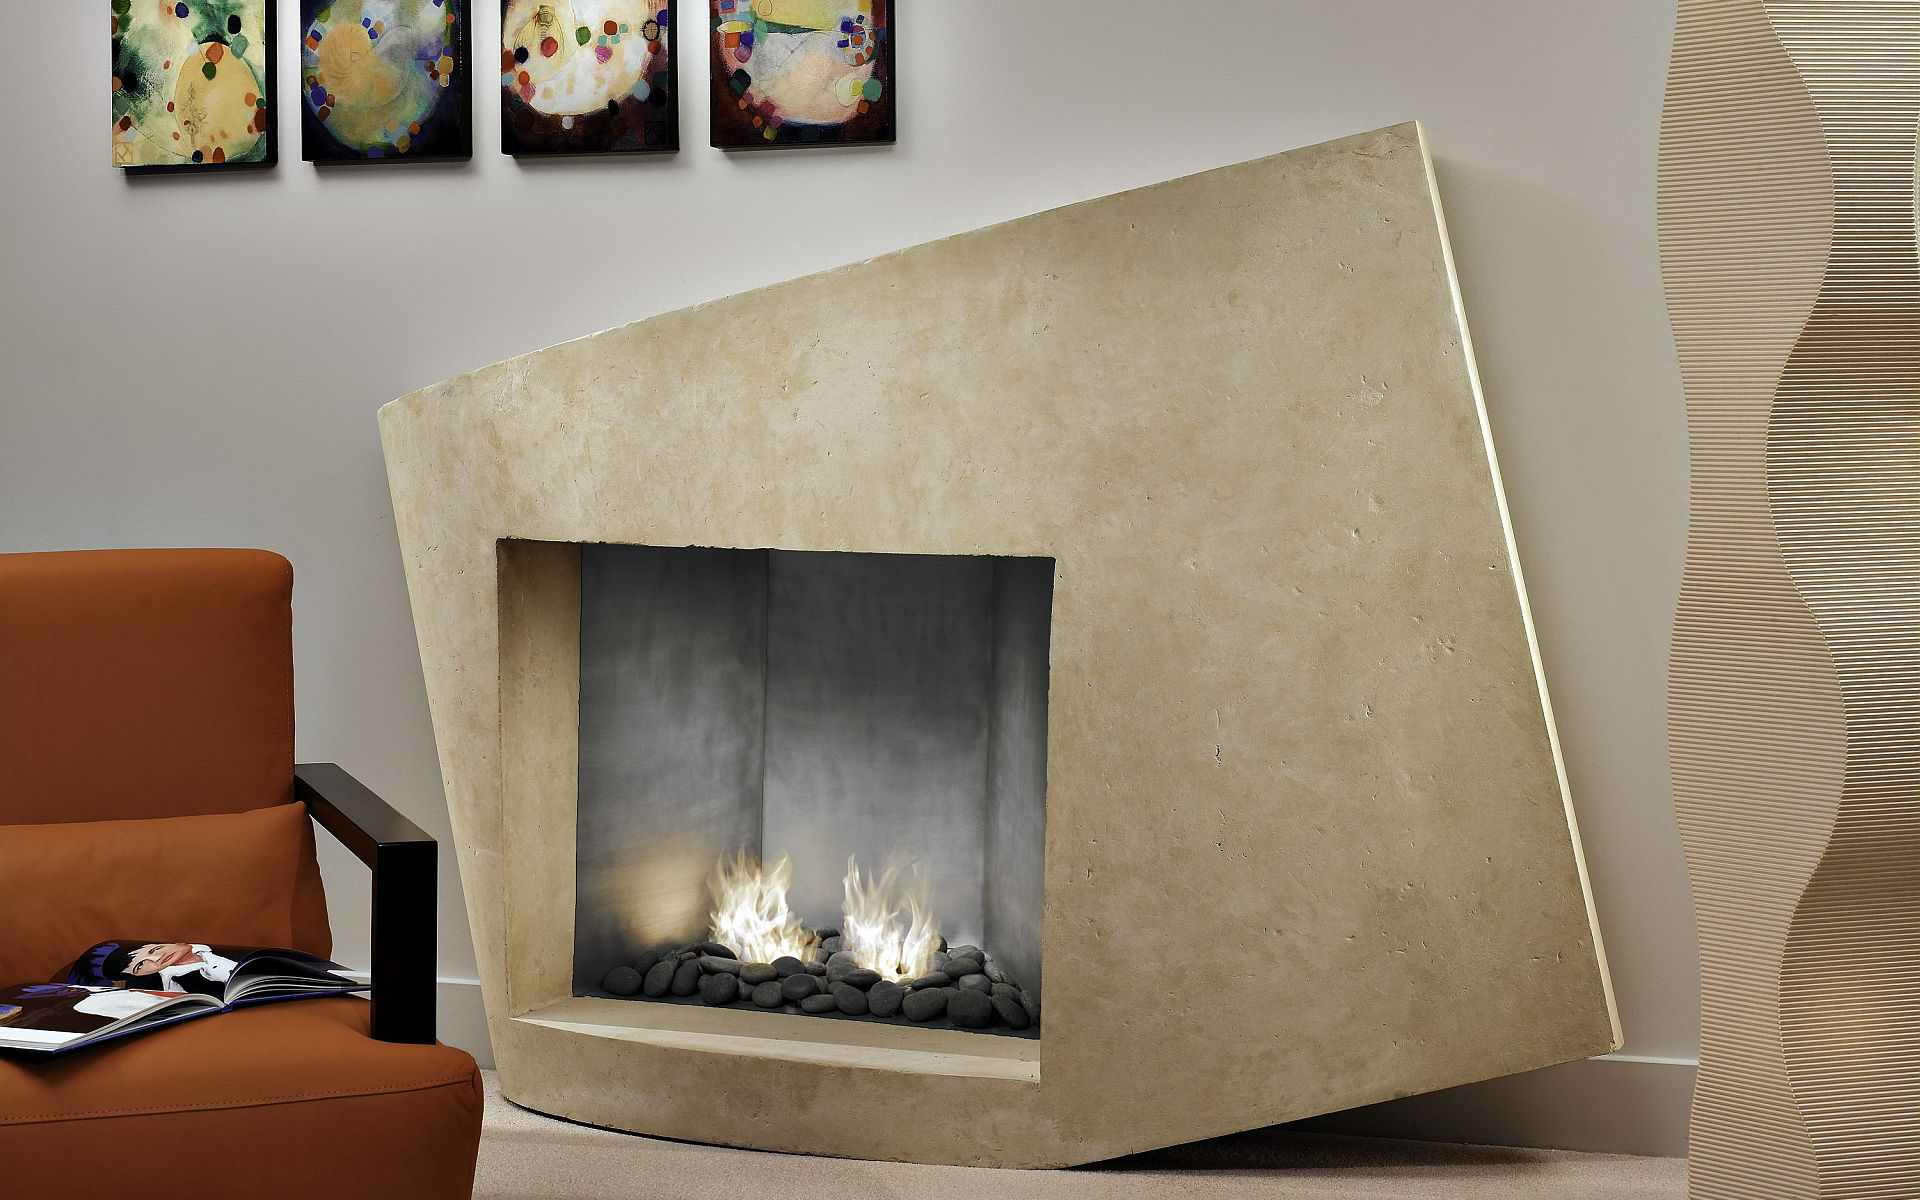 fireplace surround design ideas with granite - Fireplace Surround Design Ideas